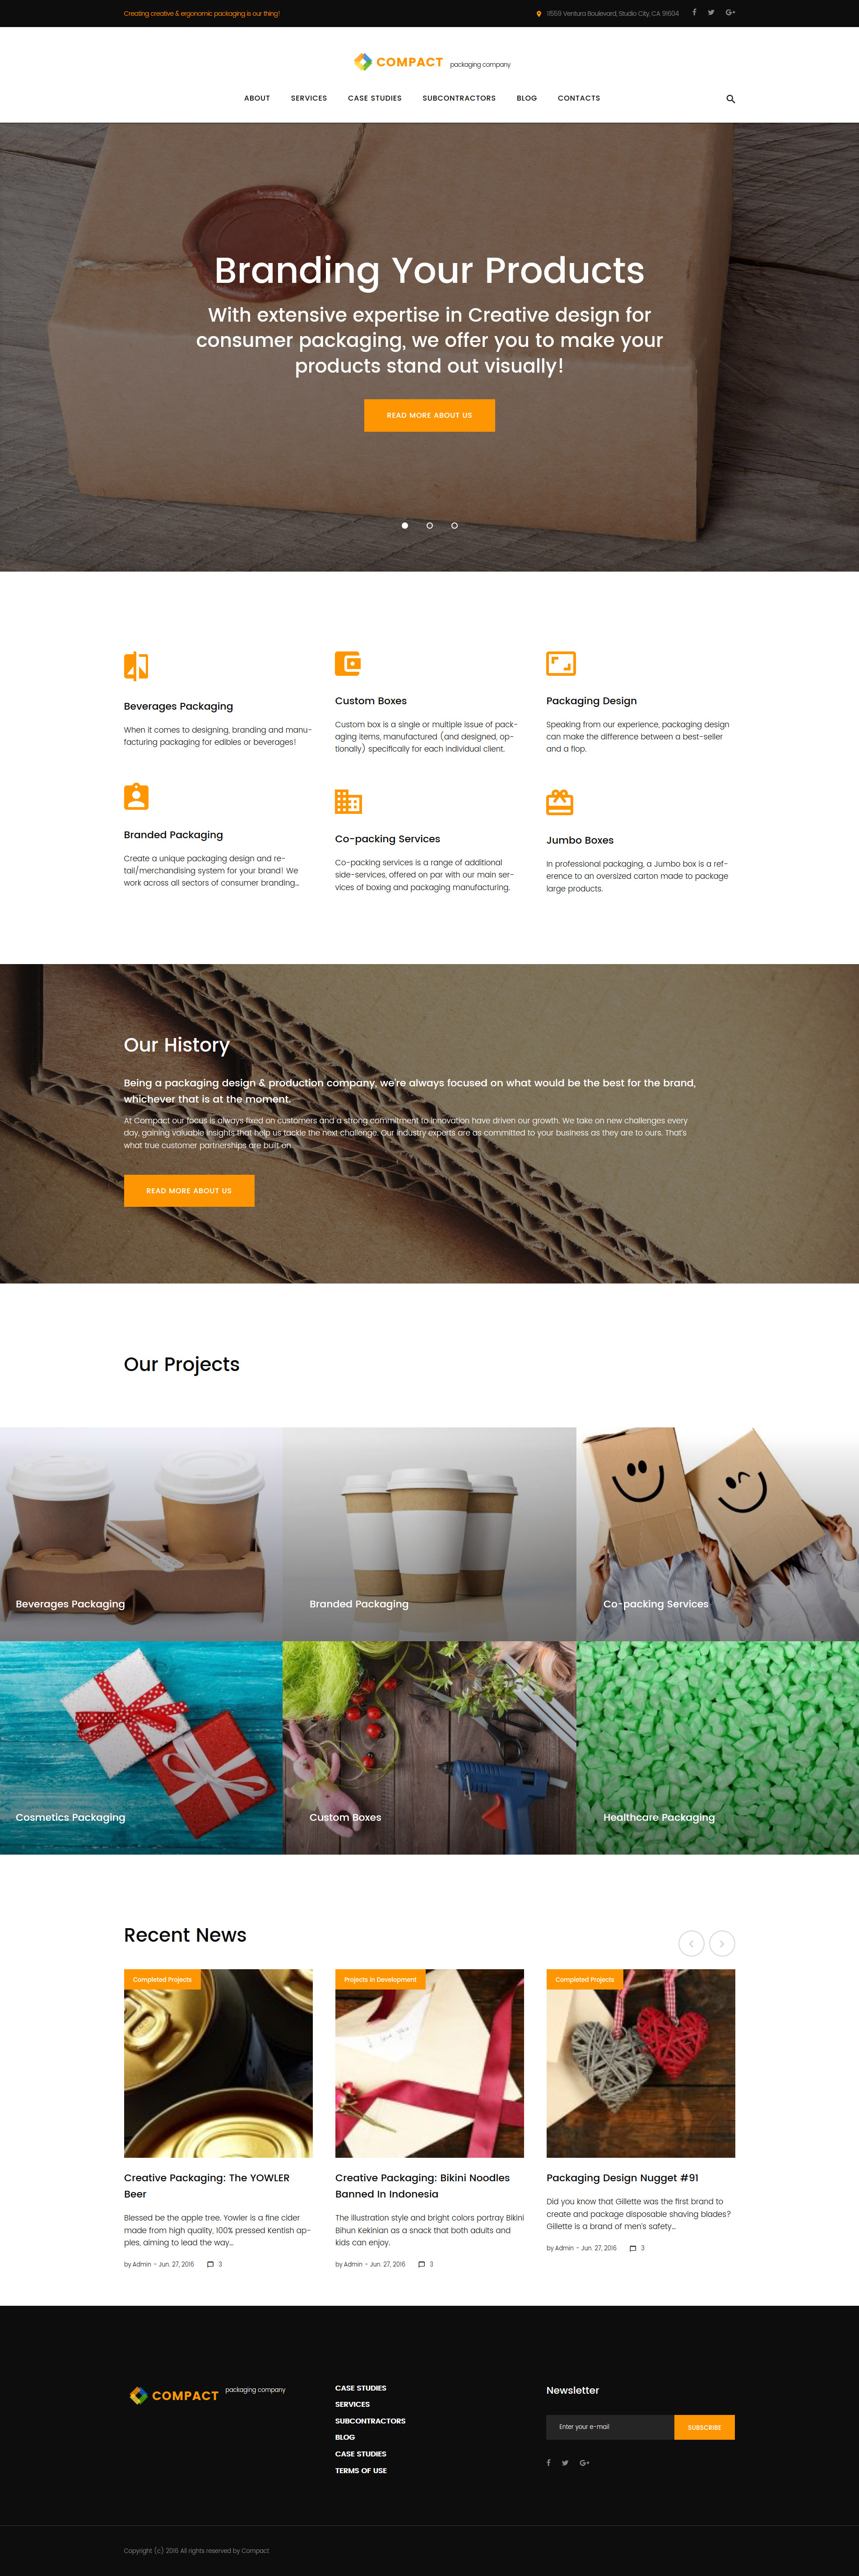 Compact - Packaging Company WordPress Theme